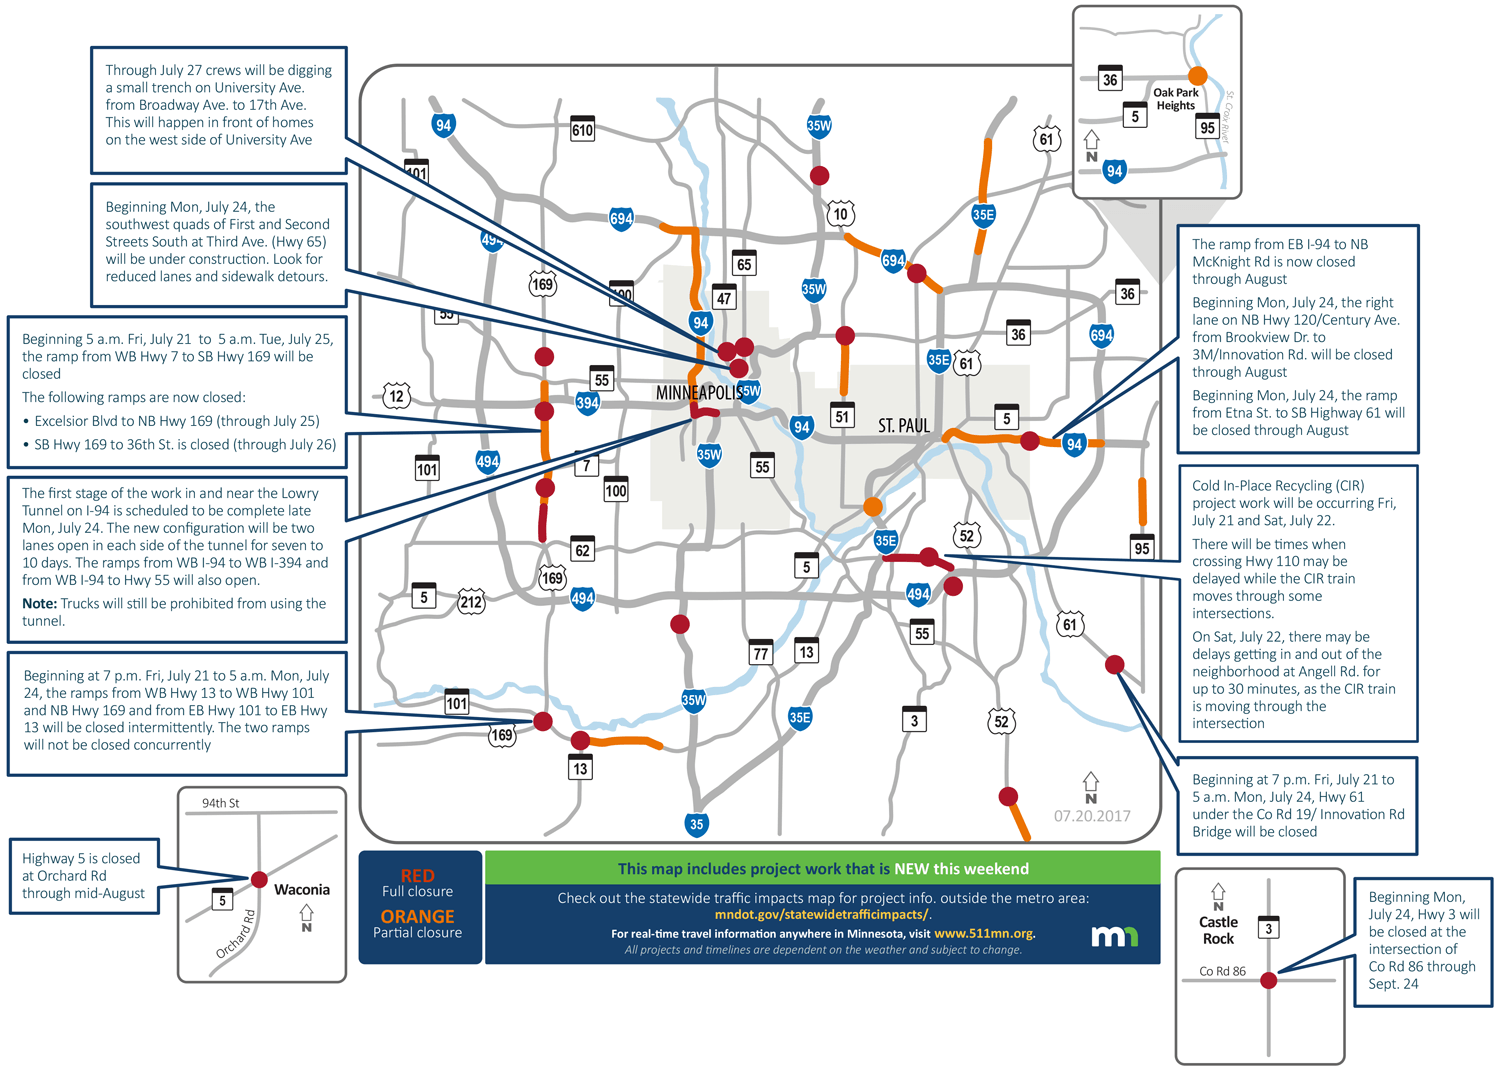 Construction across the Twin Cities for the weekend of July 22-23